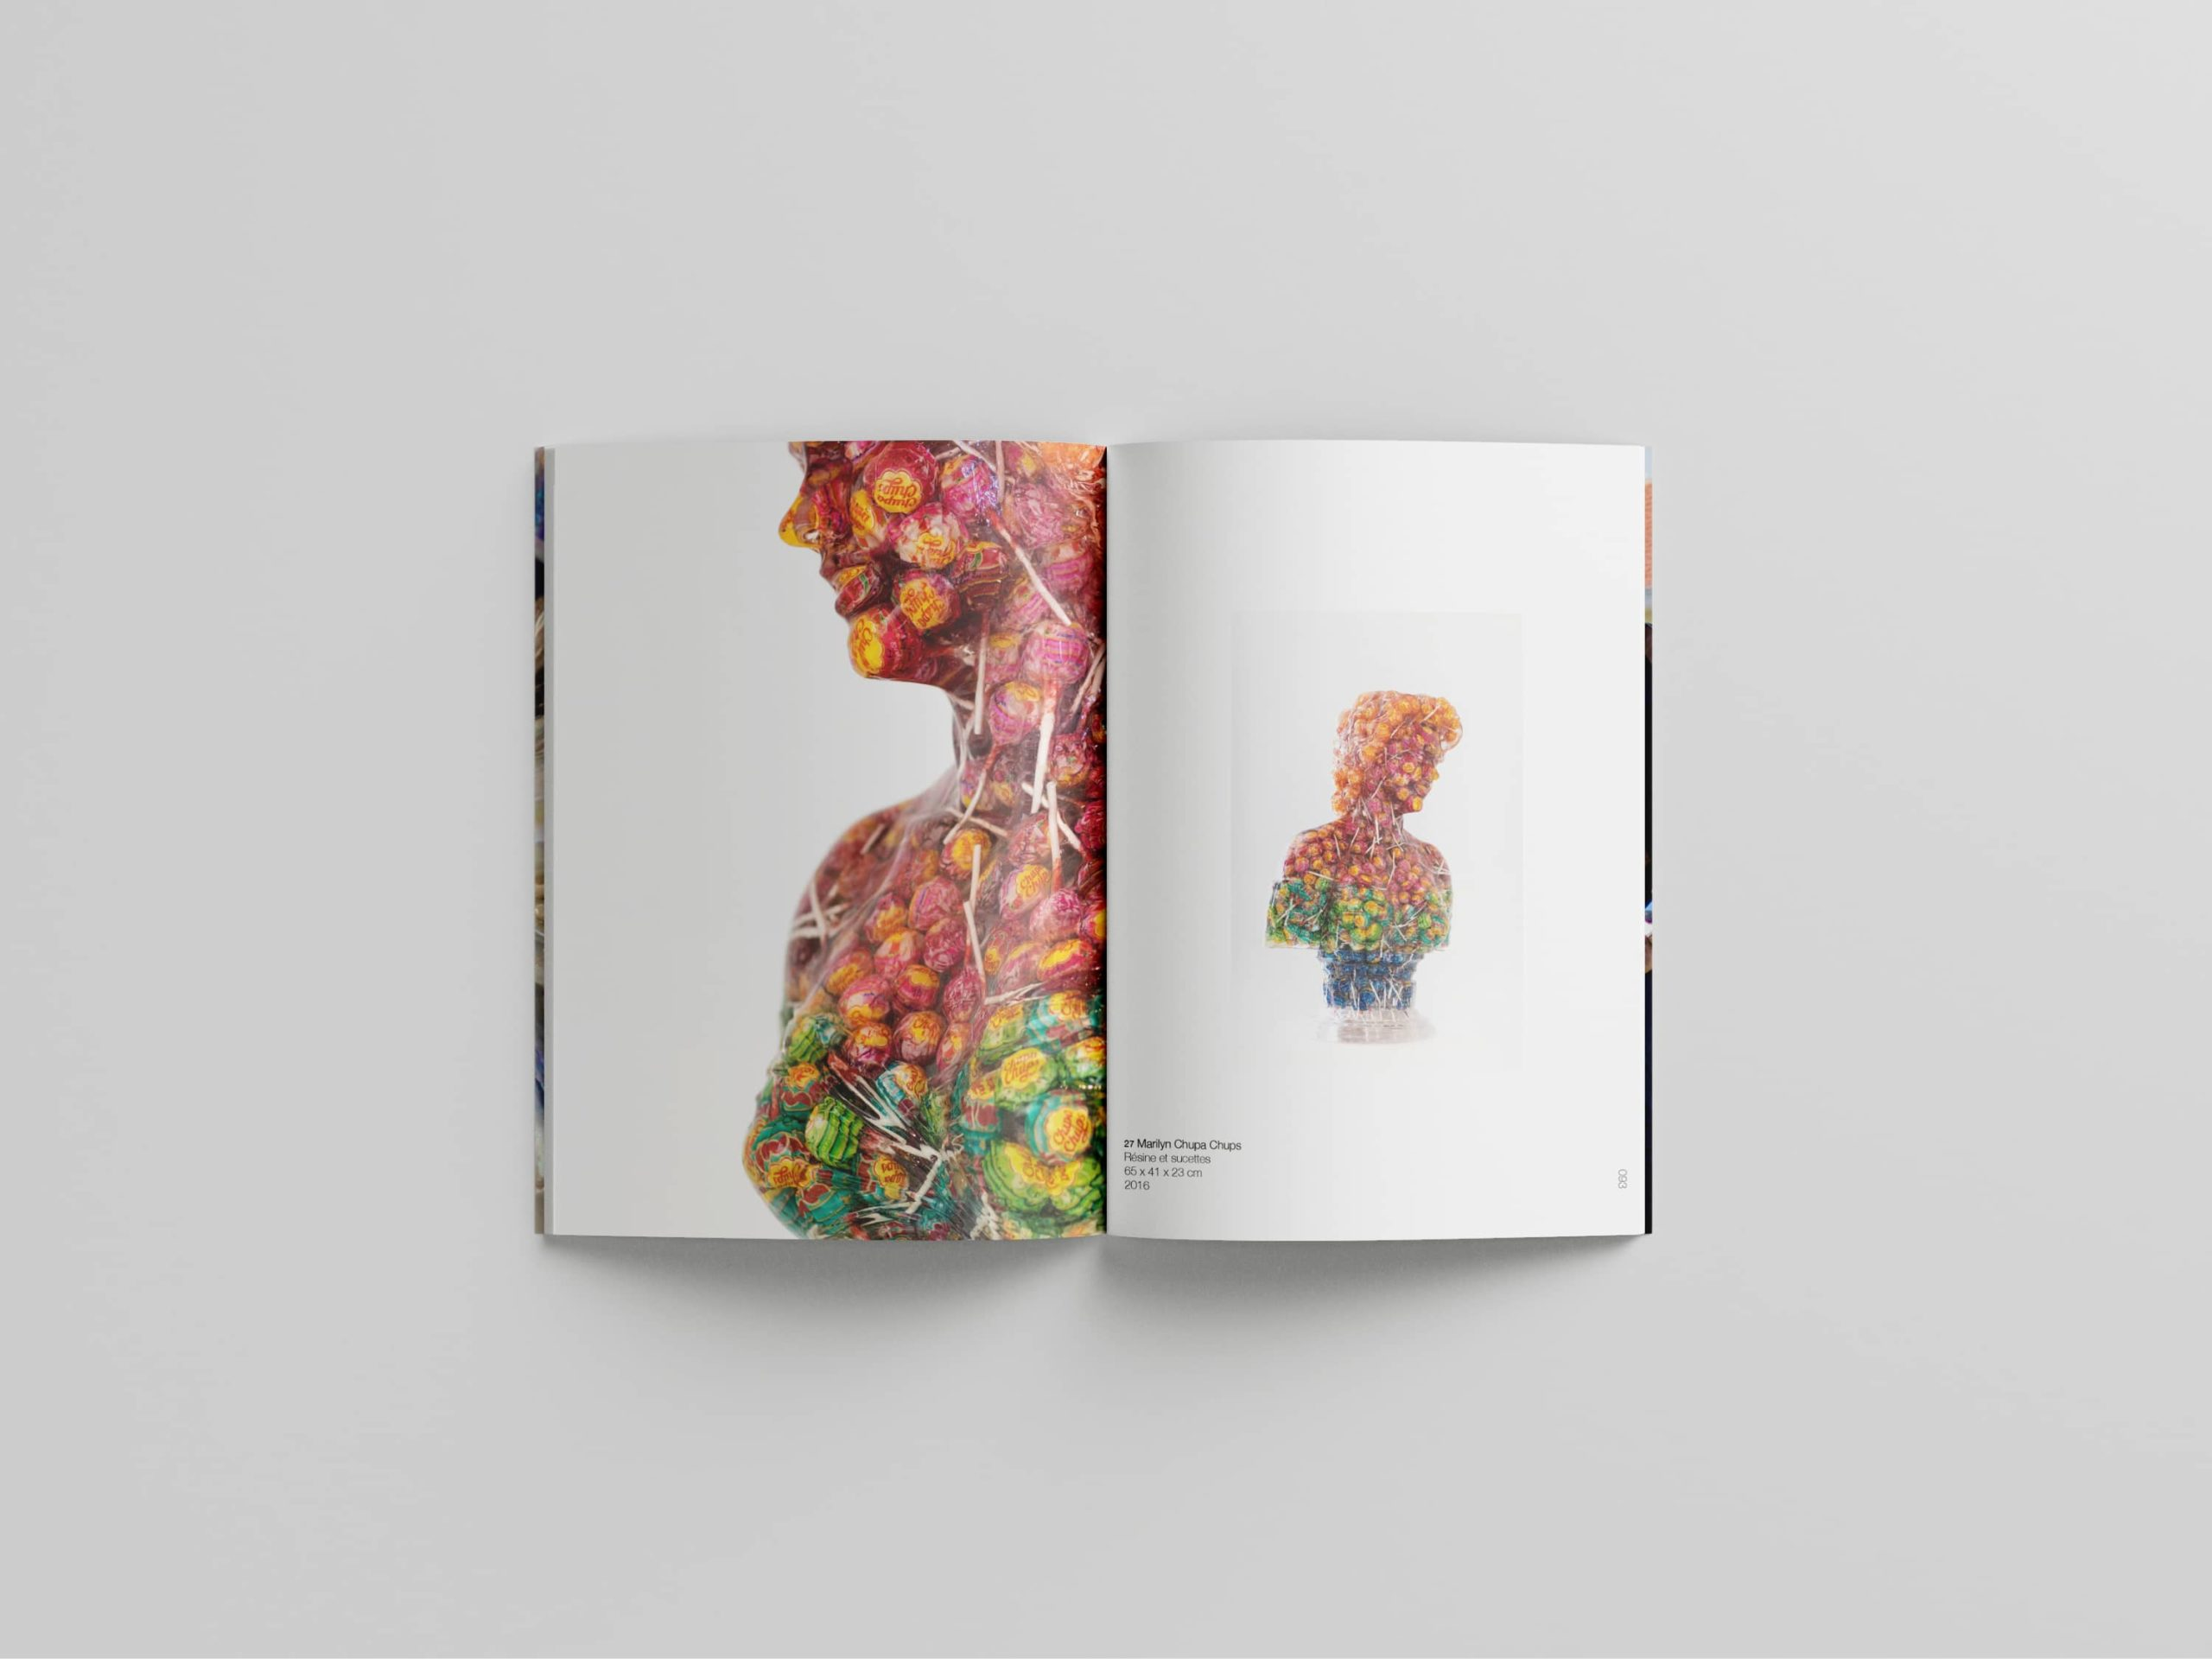 Exhibition Catalog - A River To Cross